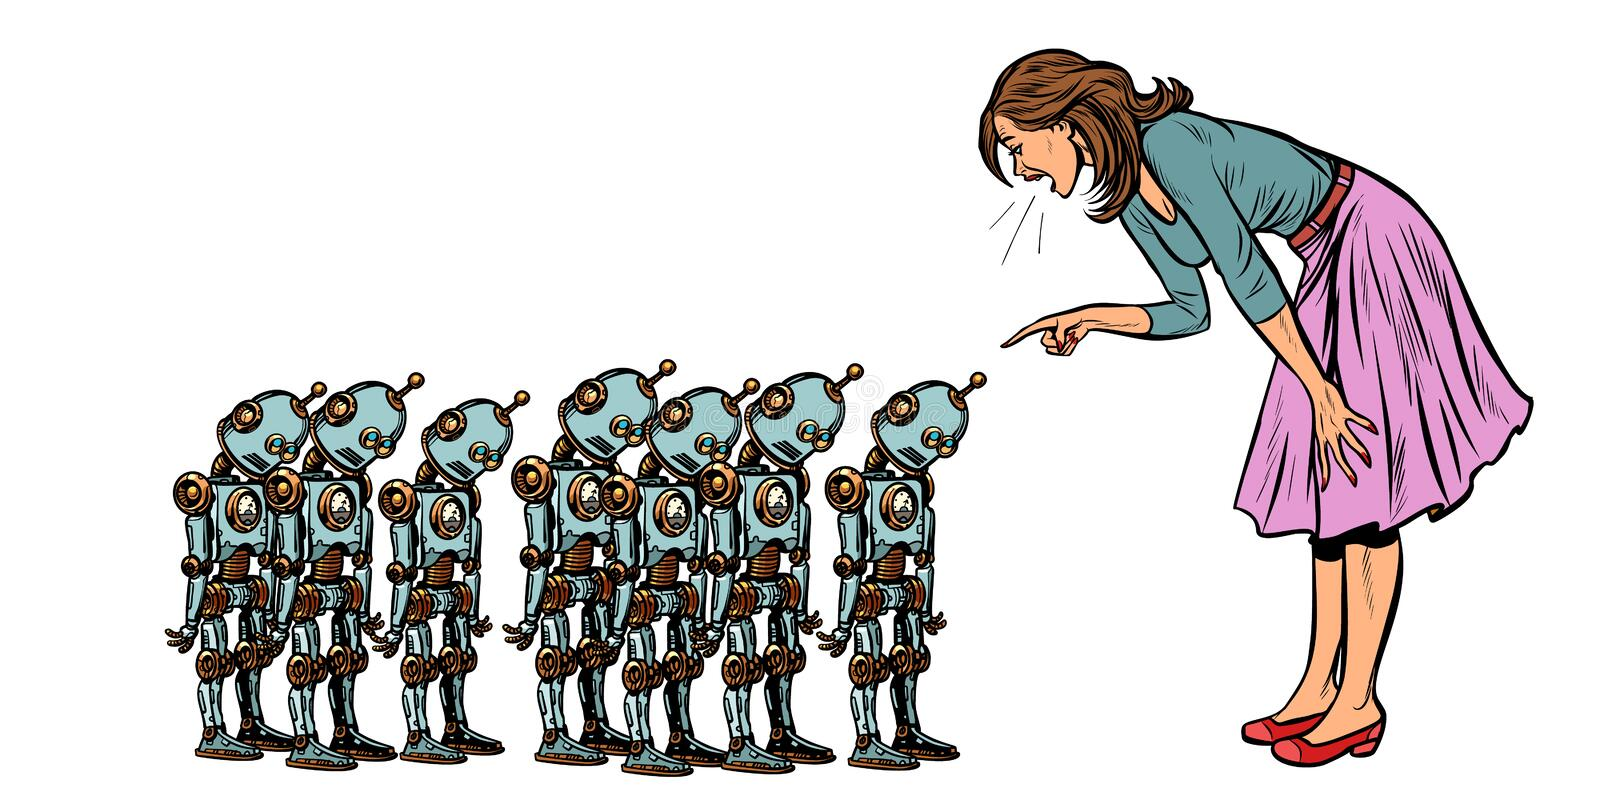 Learning artificial intelligence concept, woman swears at small robots royalty free illustration